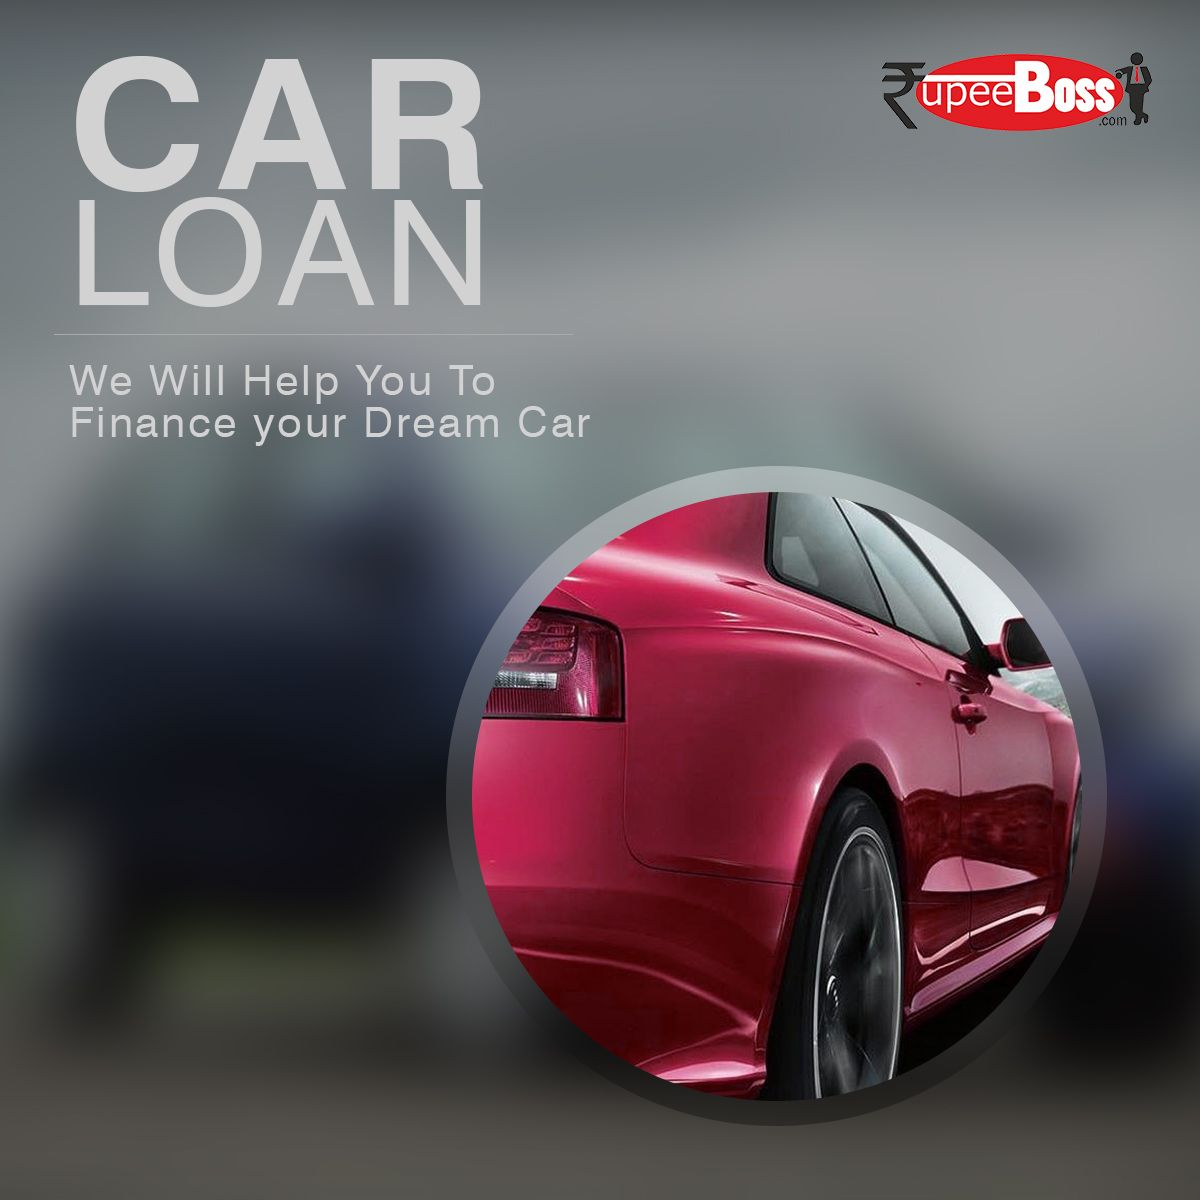 We Will Help You To Finance Your Dream Car Http Www Rupeeboss Com Car Loan Dream Cars Business Capital Loan